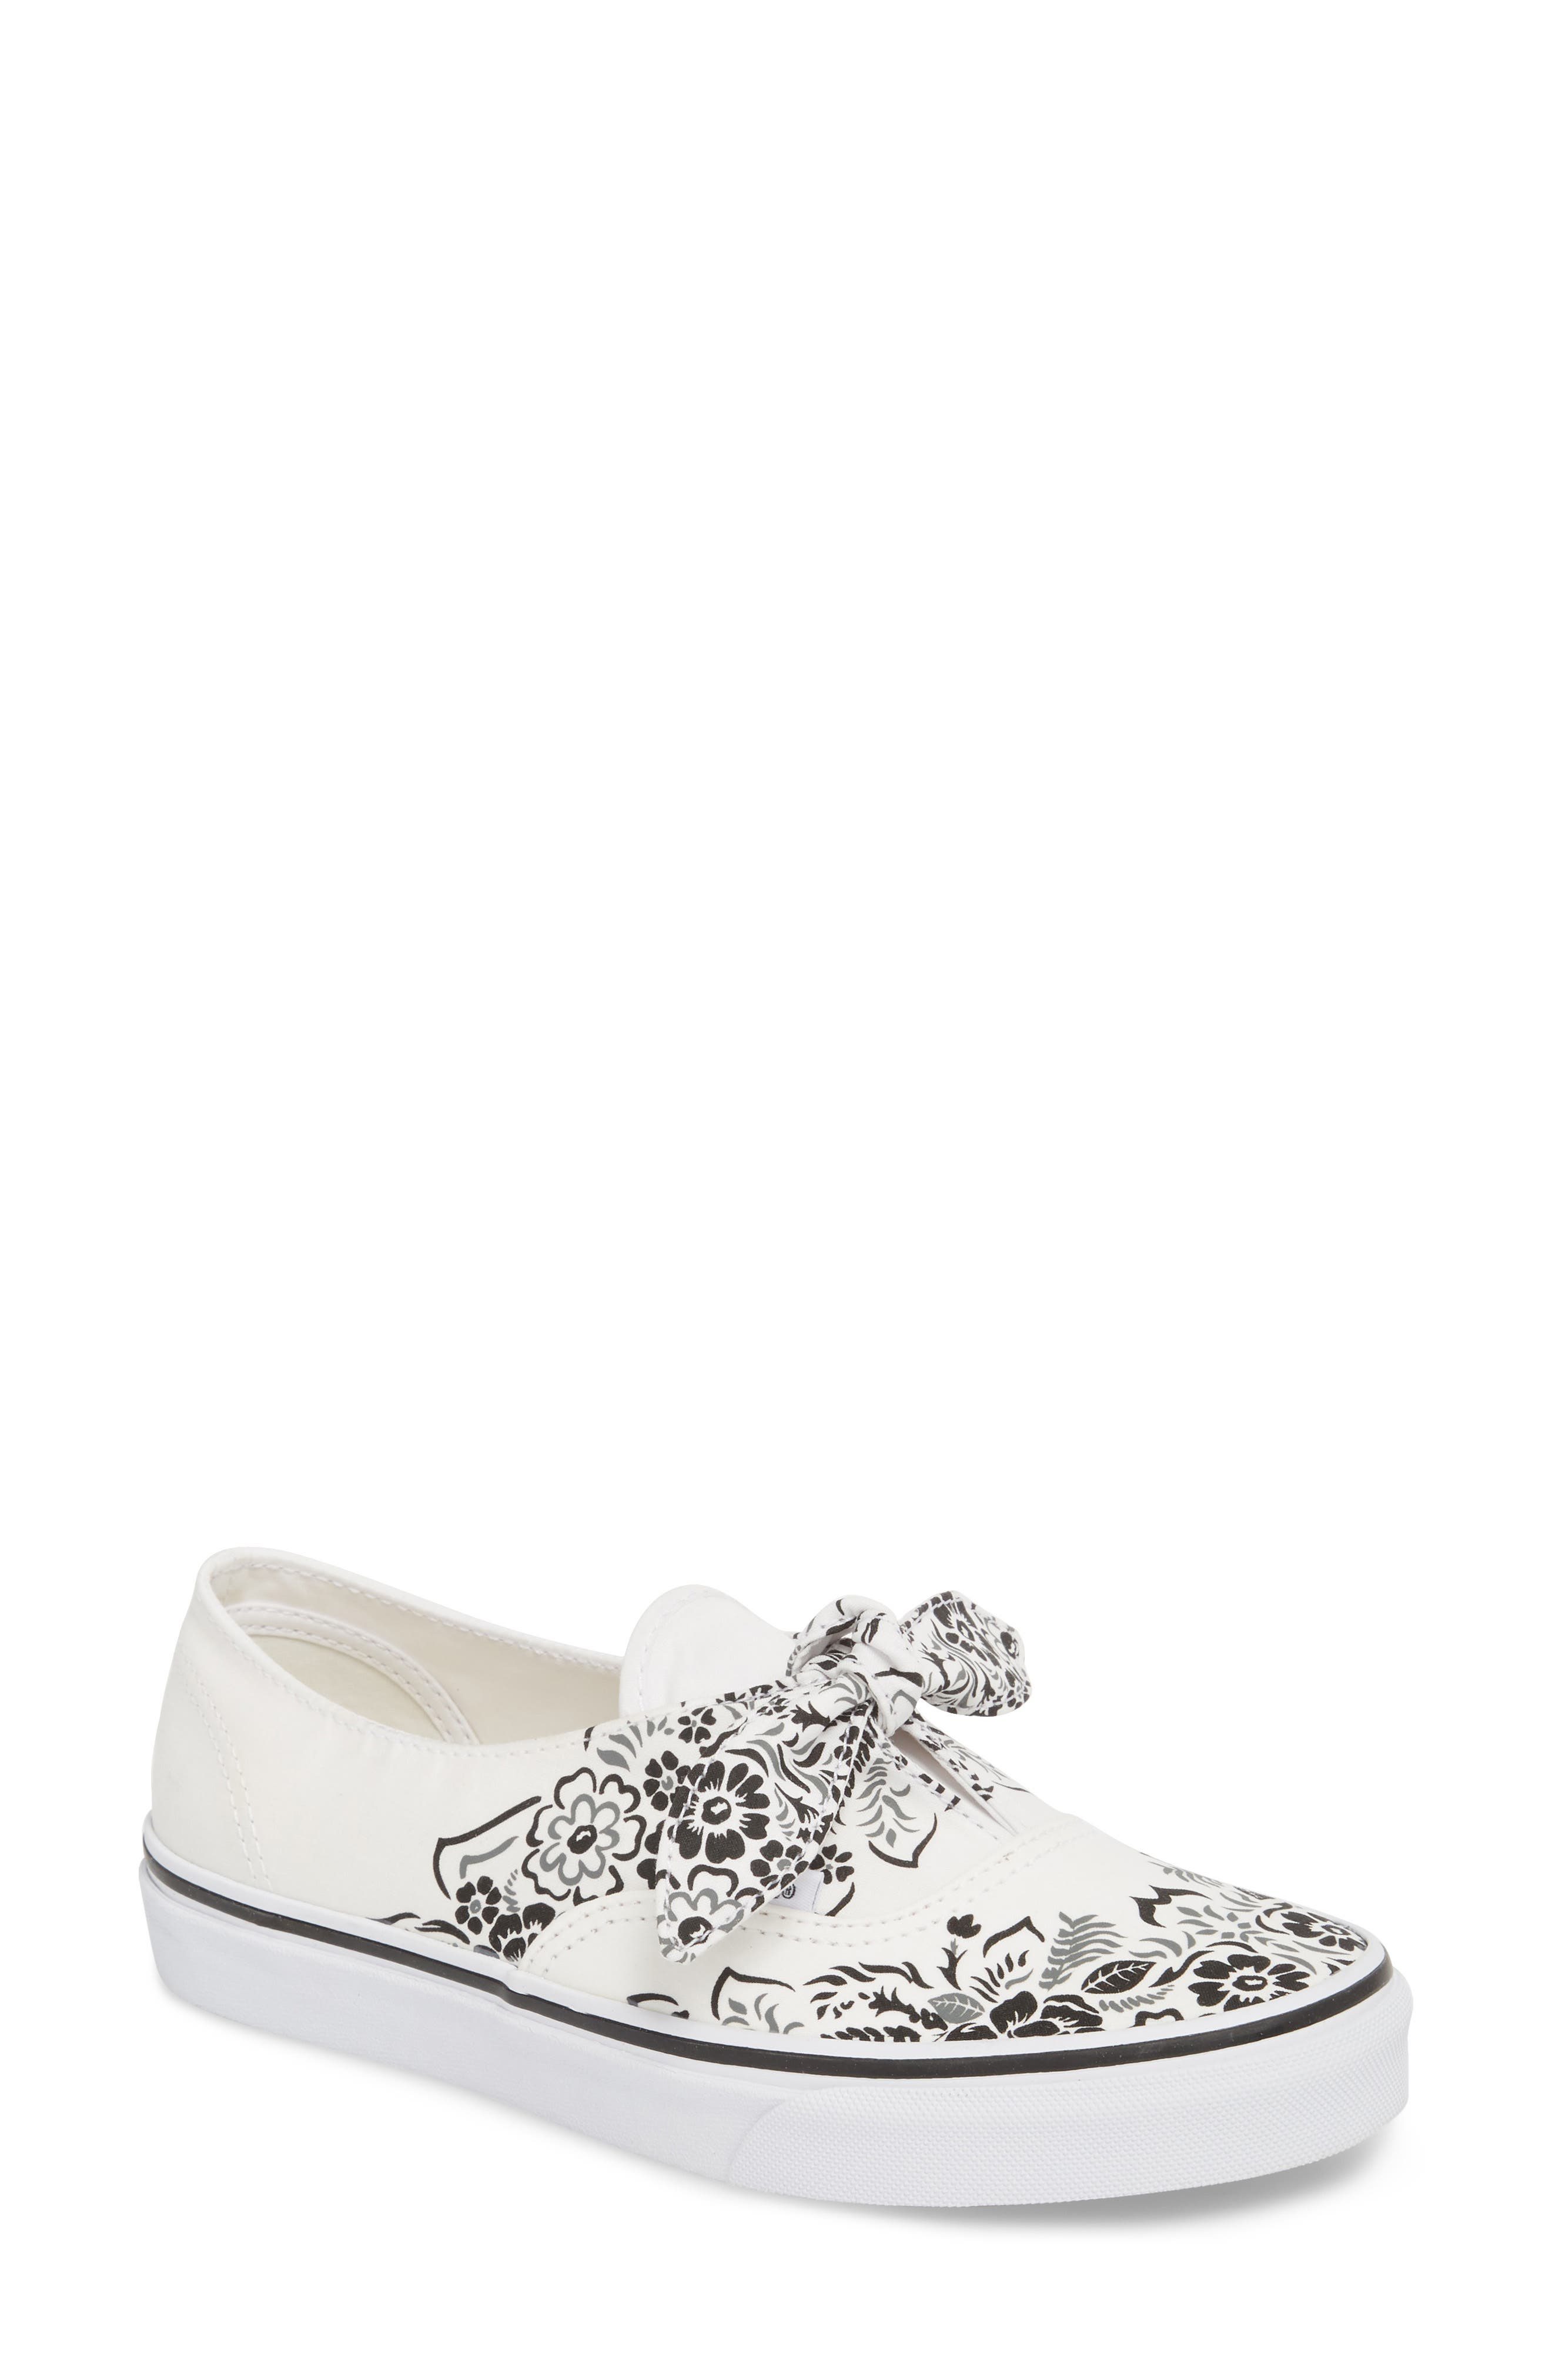 UA Authentic Knotted Floral Bandana Slip-On Sneaker,                         Main,                         color, Marshmallow